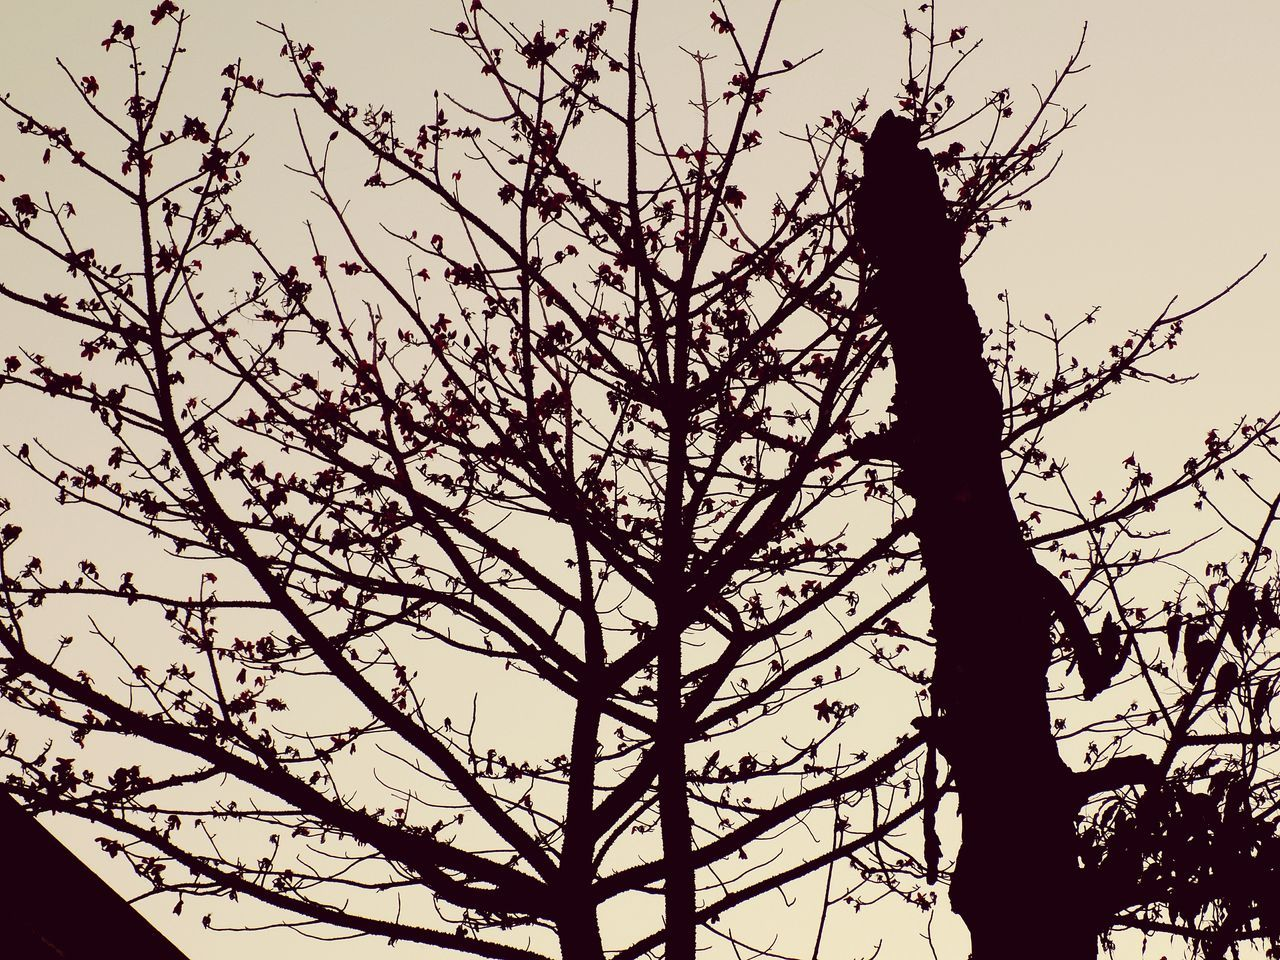 tree, branch, low angle view, nature, silhouette, outdoors, no people, sky, day, growth, tree trunk, beauty in nature, bare tree, animal themes, bird